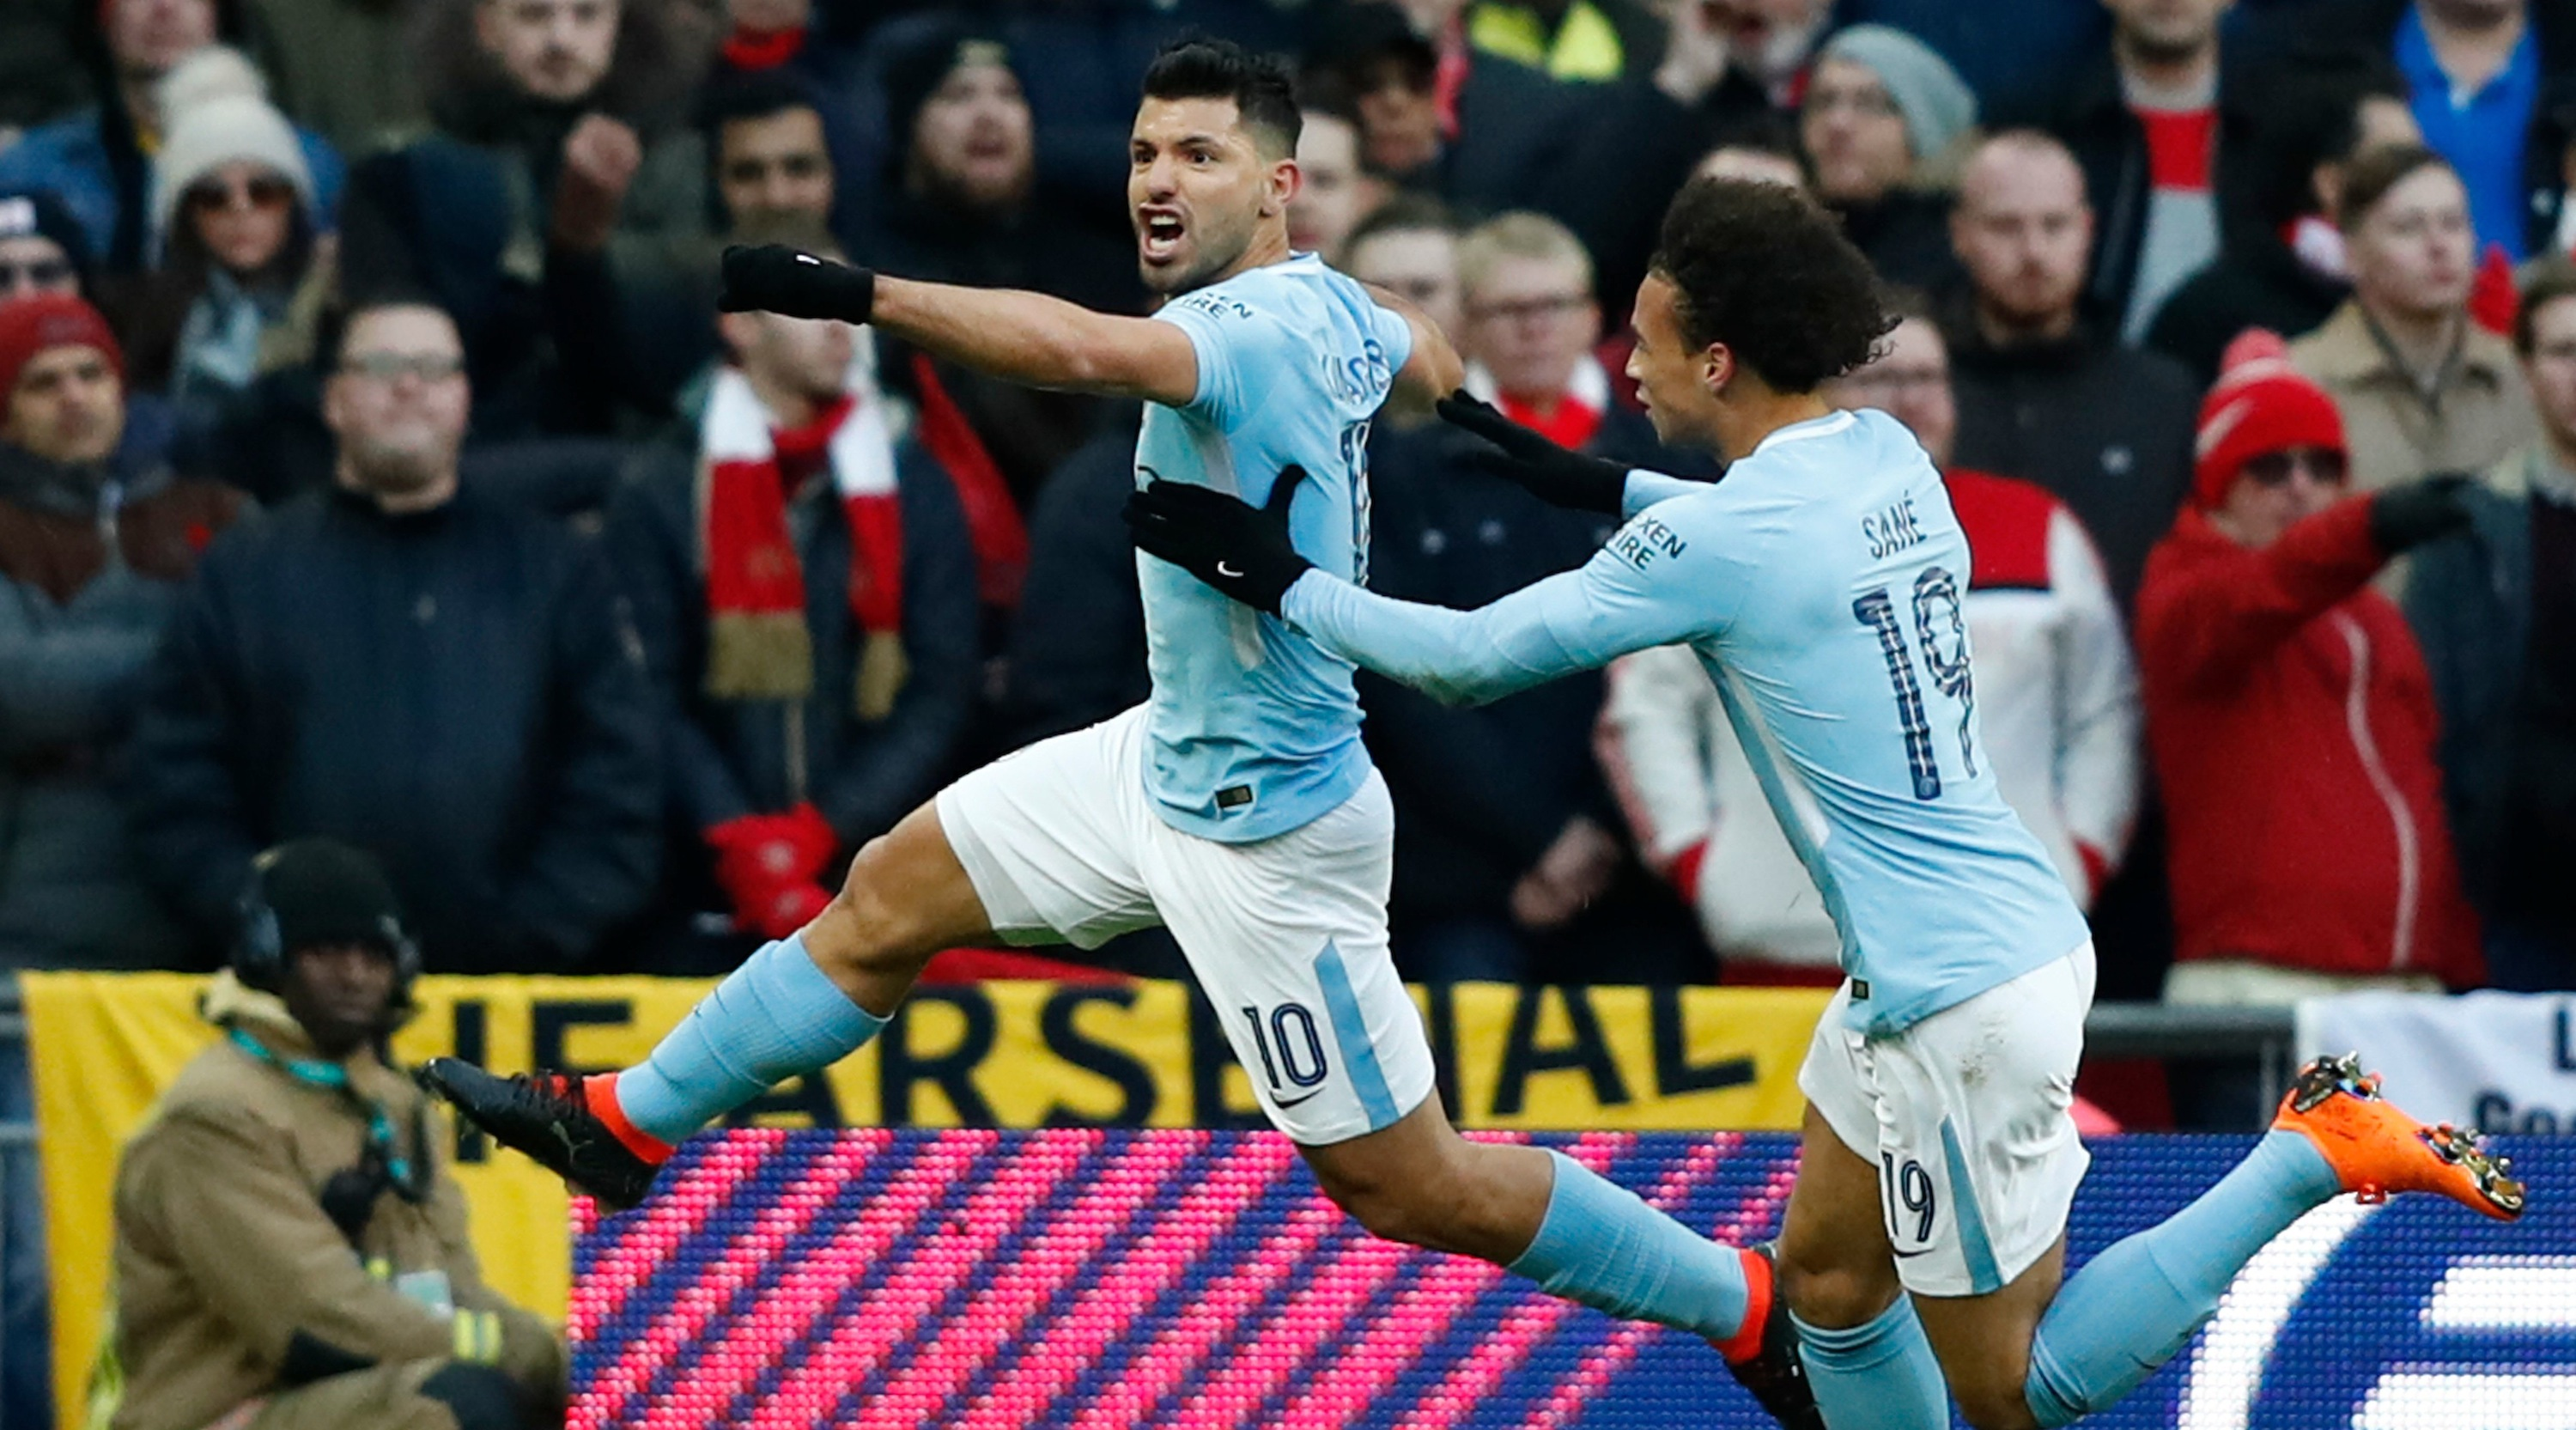 Manchester City's Argentinian striker Sergio Aguero celebrates with Manchester City's German midfielder Leroy Sane (R) after scoring the opening goal during the English League Cup final football match between Manchester City and Arsenal at Wembley stadium in north London on February 25, 2018. / AFP PHOTO / Adrian DENNIS / RESTRICTED TO EDITORIAL USE. No use with unauthorized audio, video, data, fixture lists, club/league logos or 'live' services. Online in-match use limited to 75 images, no video emulation. No use in betting, games or single club/league/player publications. / (Photo credit should read ADRIAN DENNIS/AFP/Getty Images)